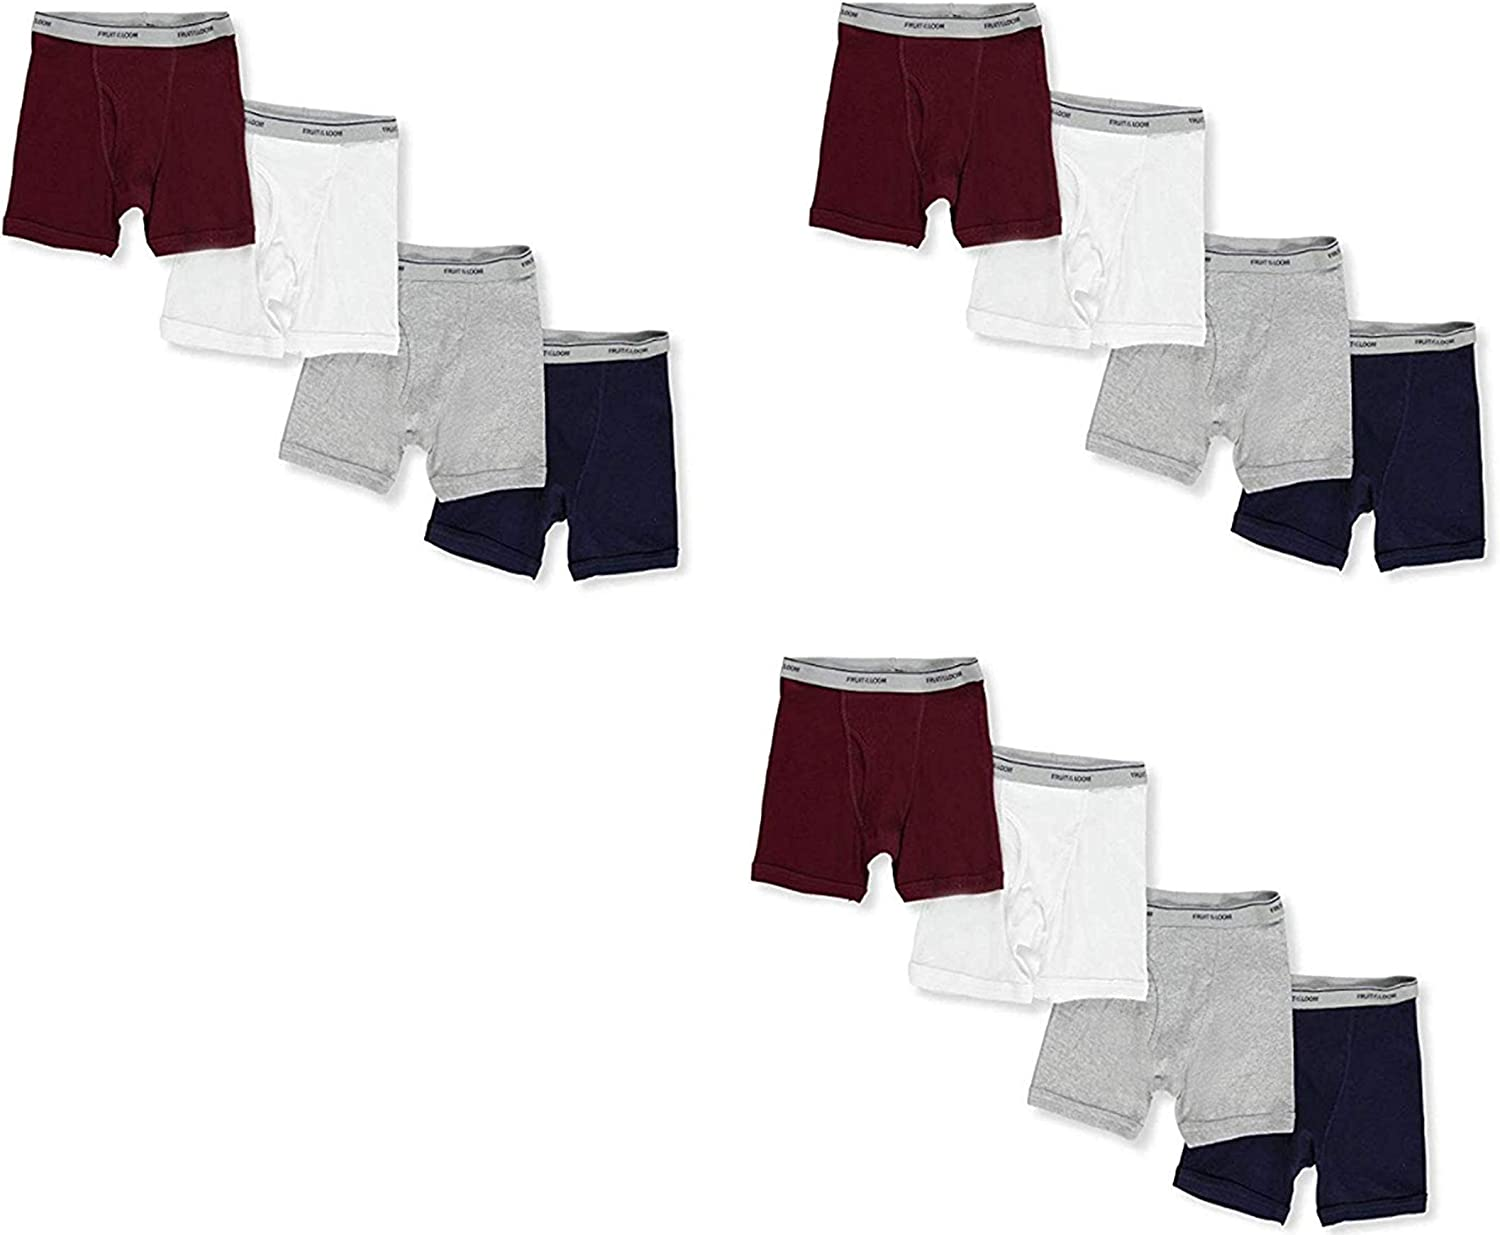 Fruit of the Loom Big Boys' 12-Pack Cotton Boxer Briefs